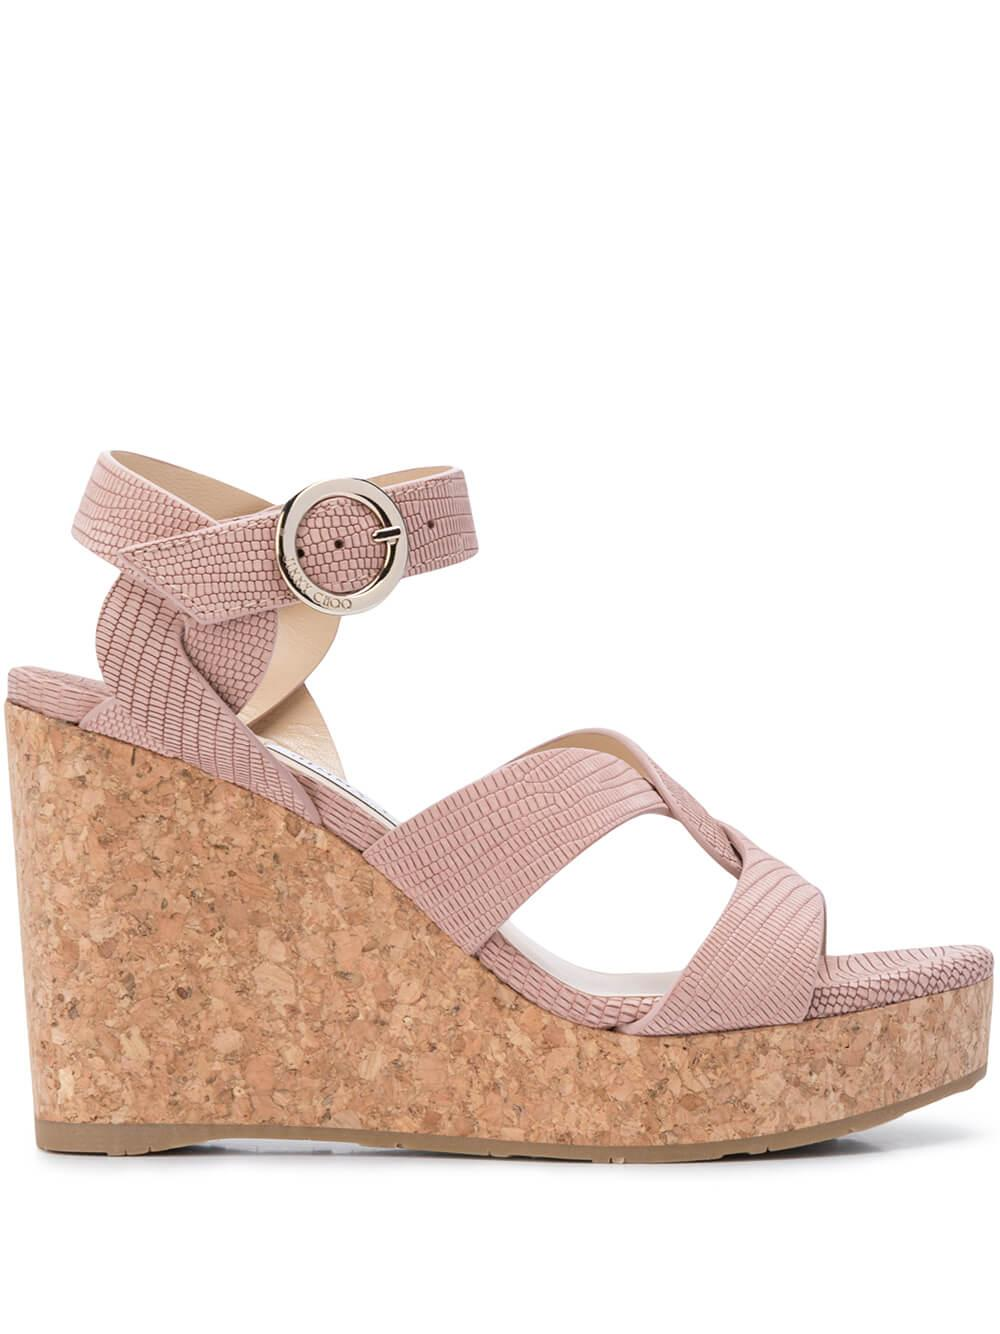 Leather 100mm Wedge Sandal With Ankle Strap Item # ALEILI100-NUL